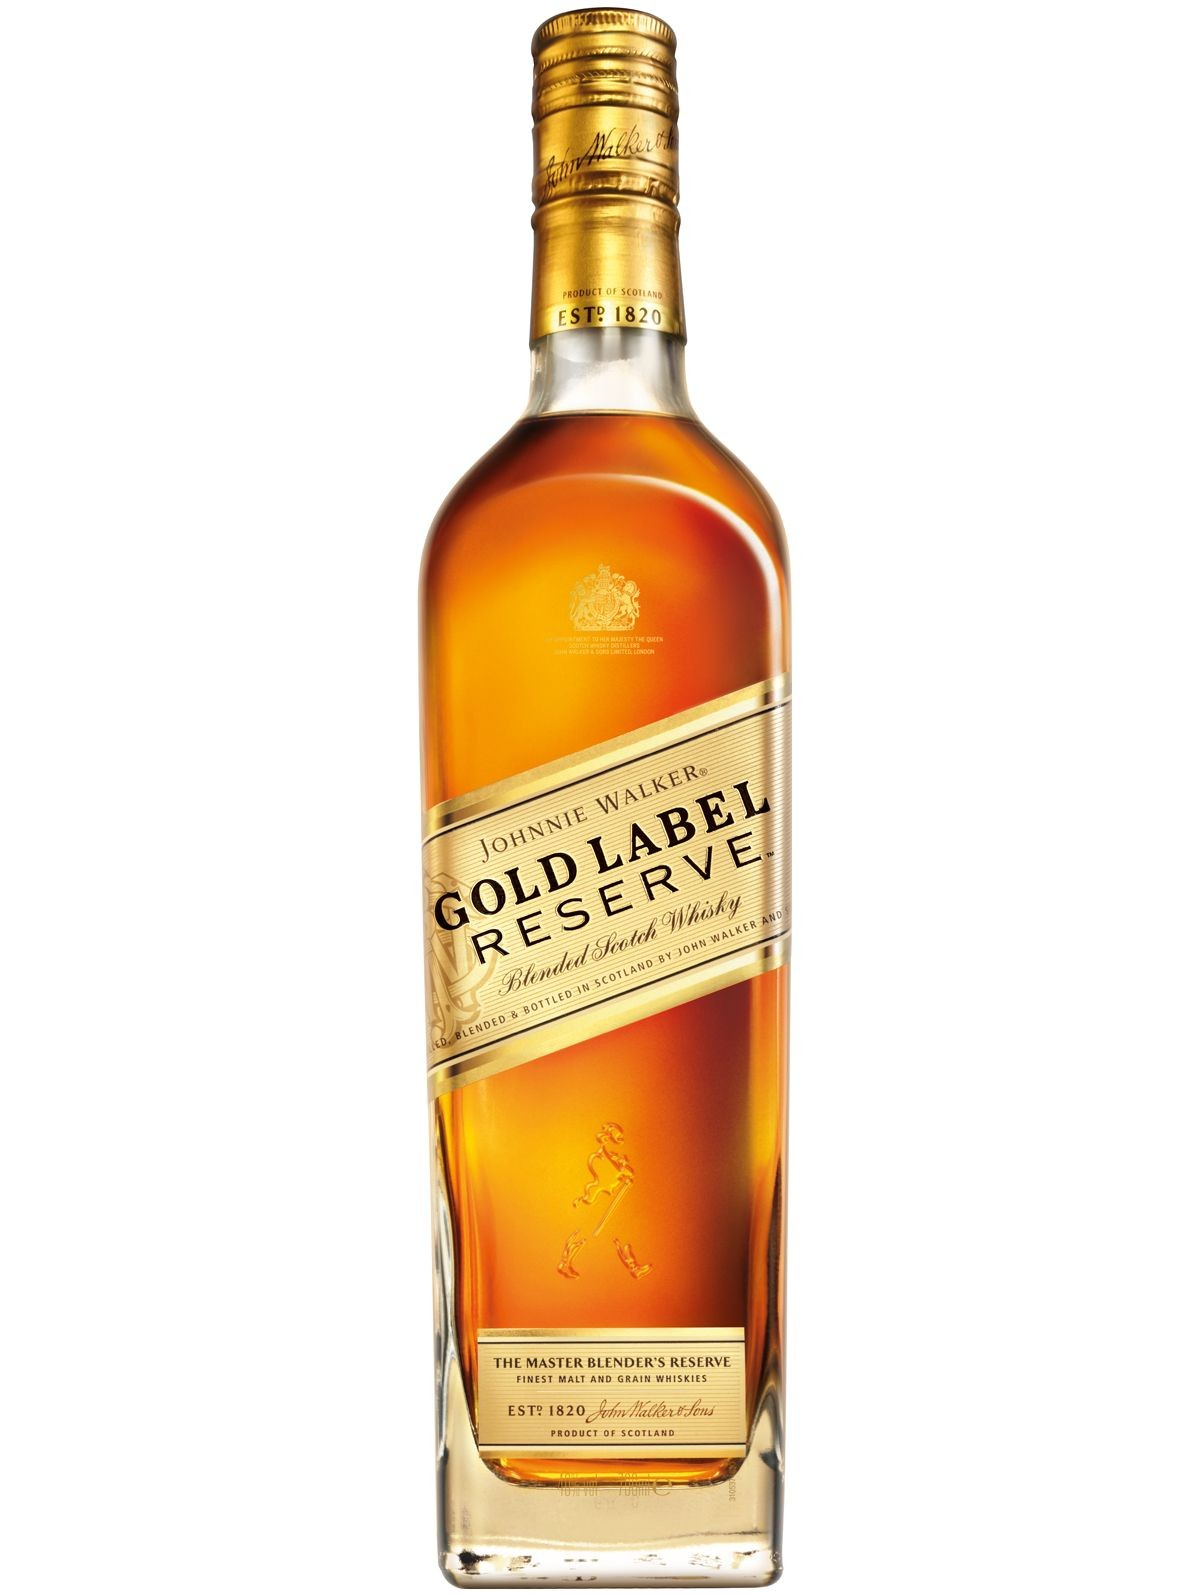 This is a photo of Versatile Mekong Whisky Gold Label